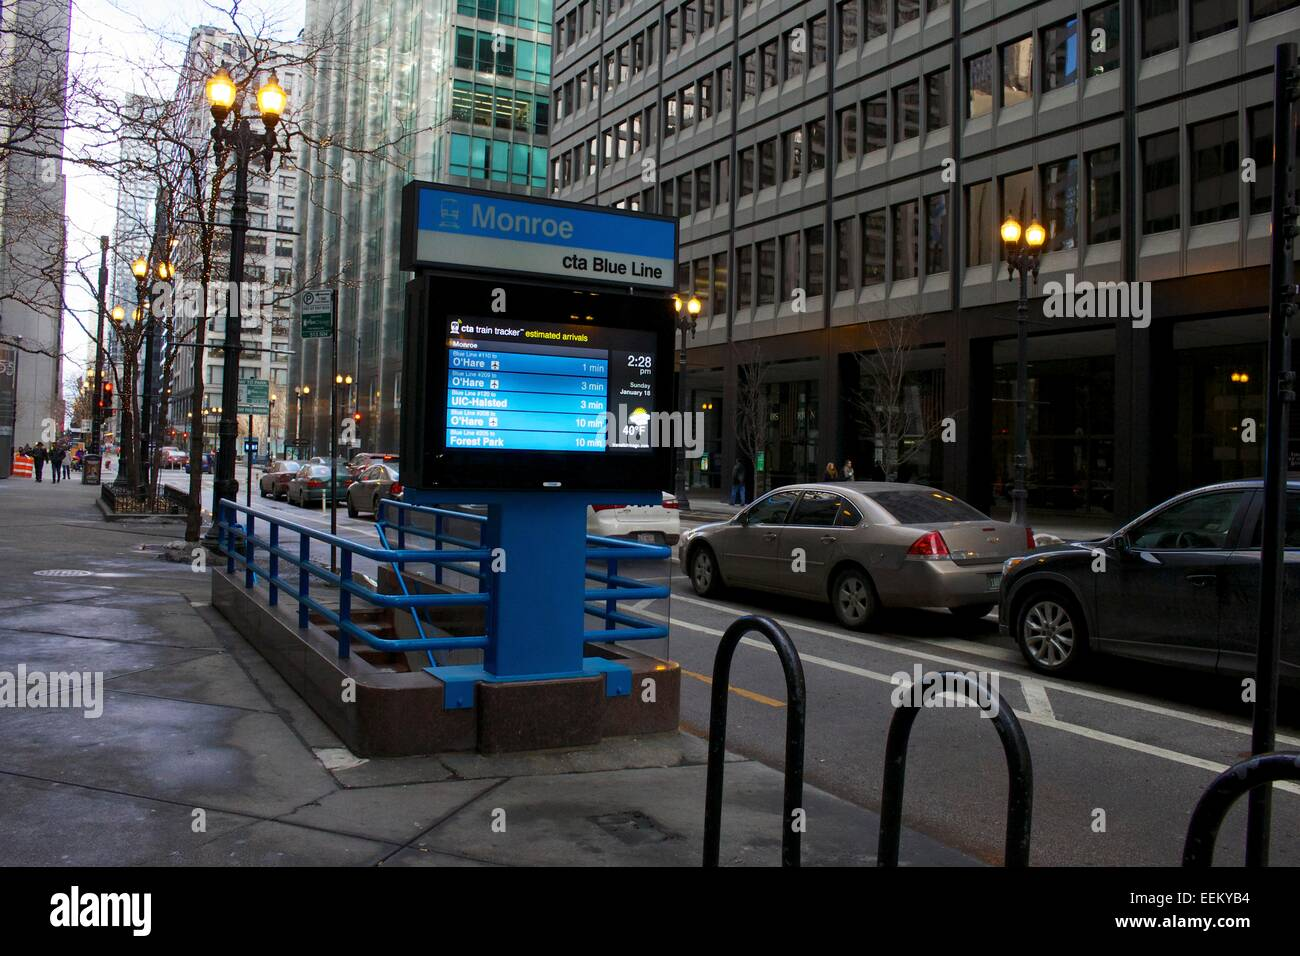 CTA Blue Line Subway entrance with electronic schedule board. - Stock Image